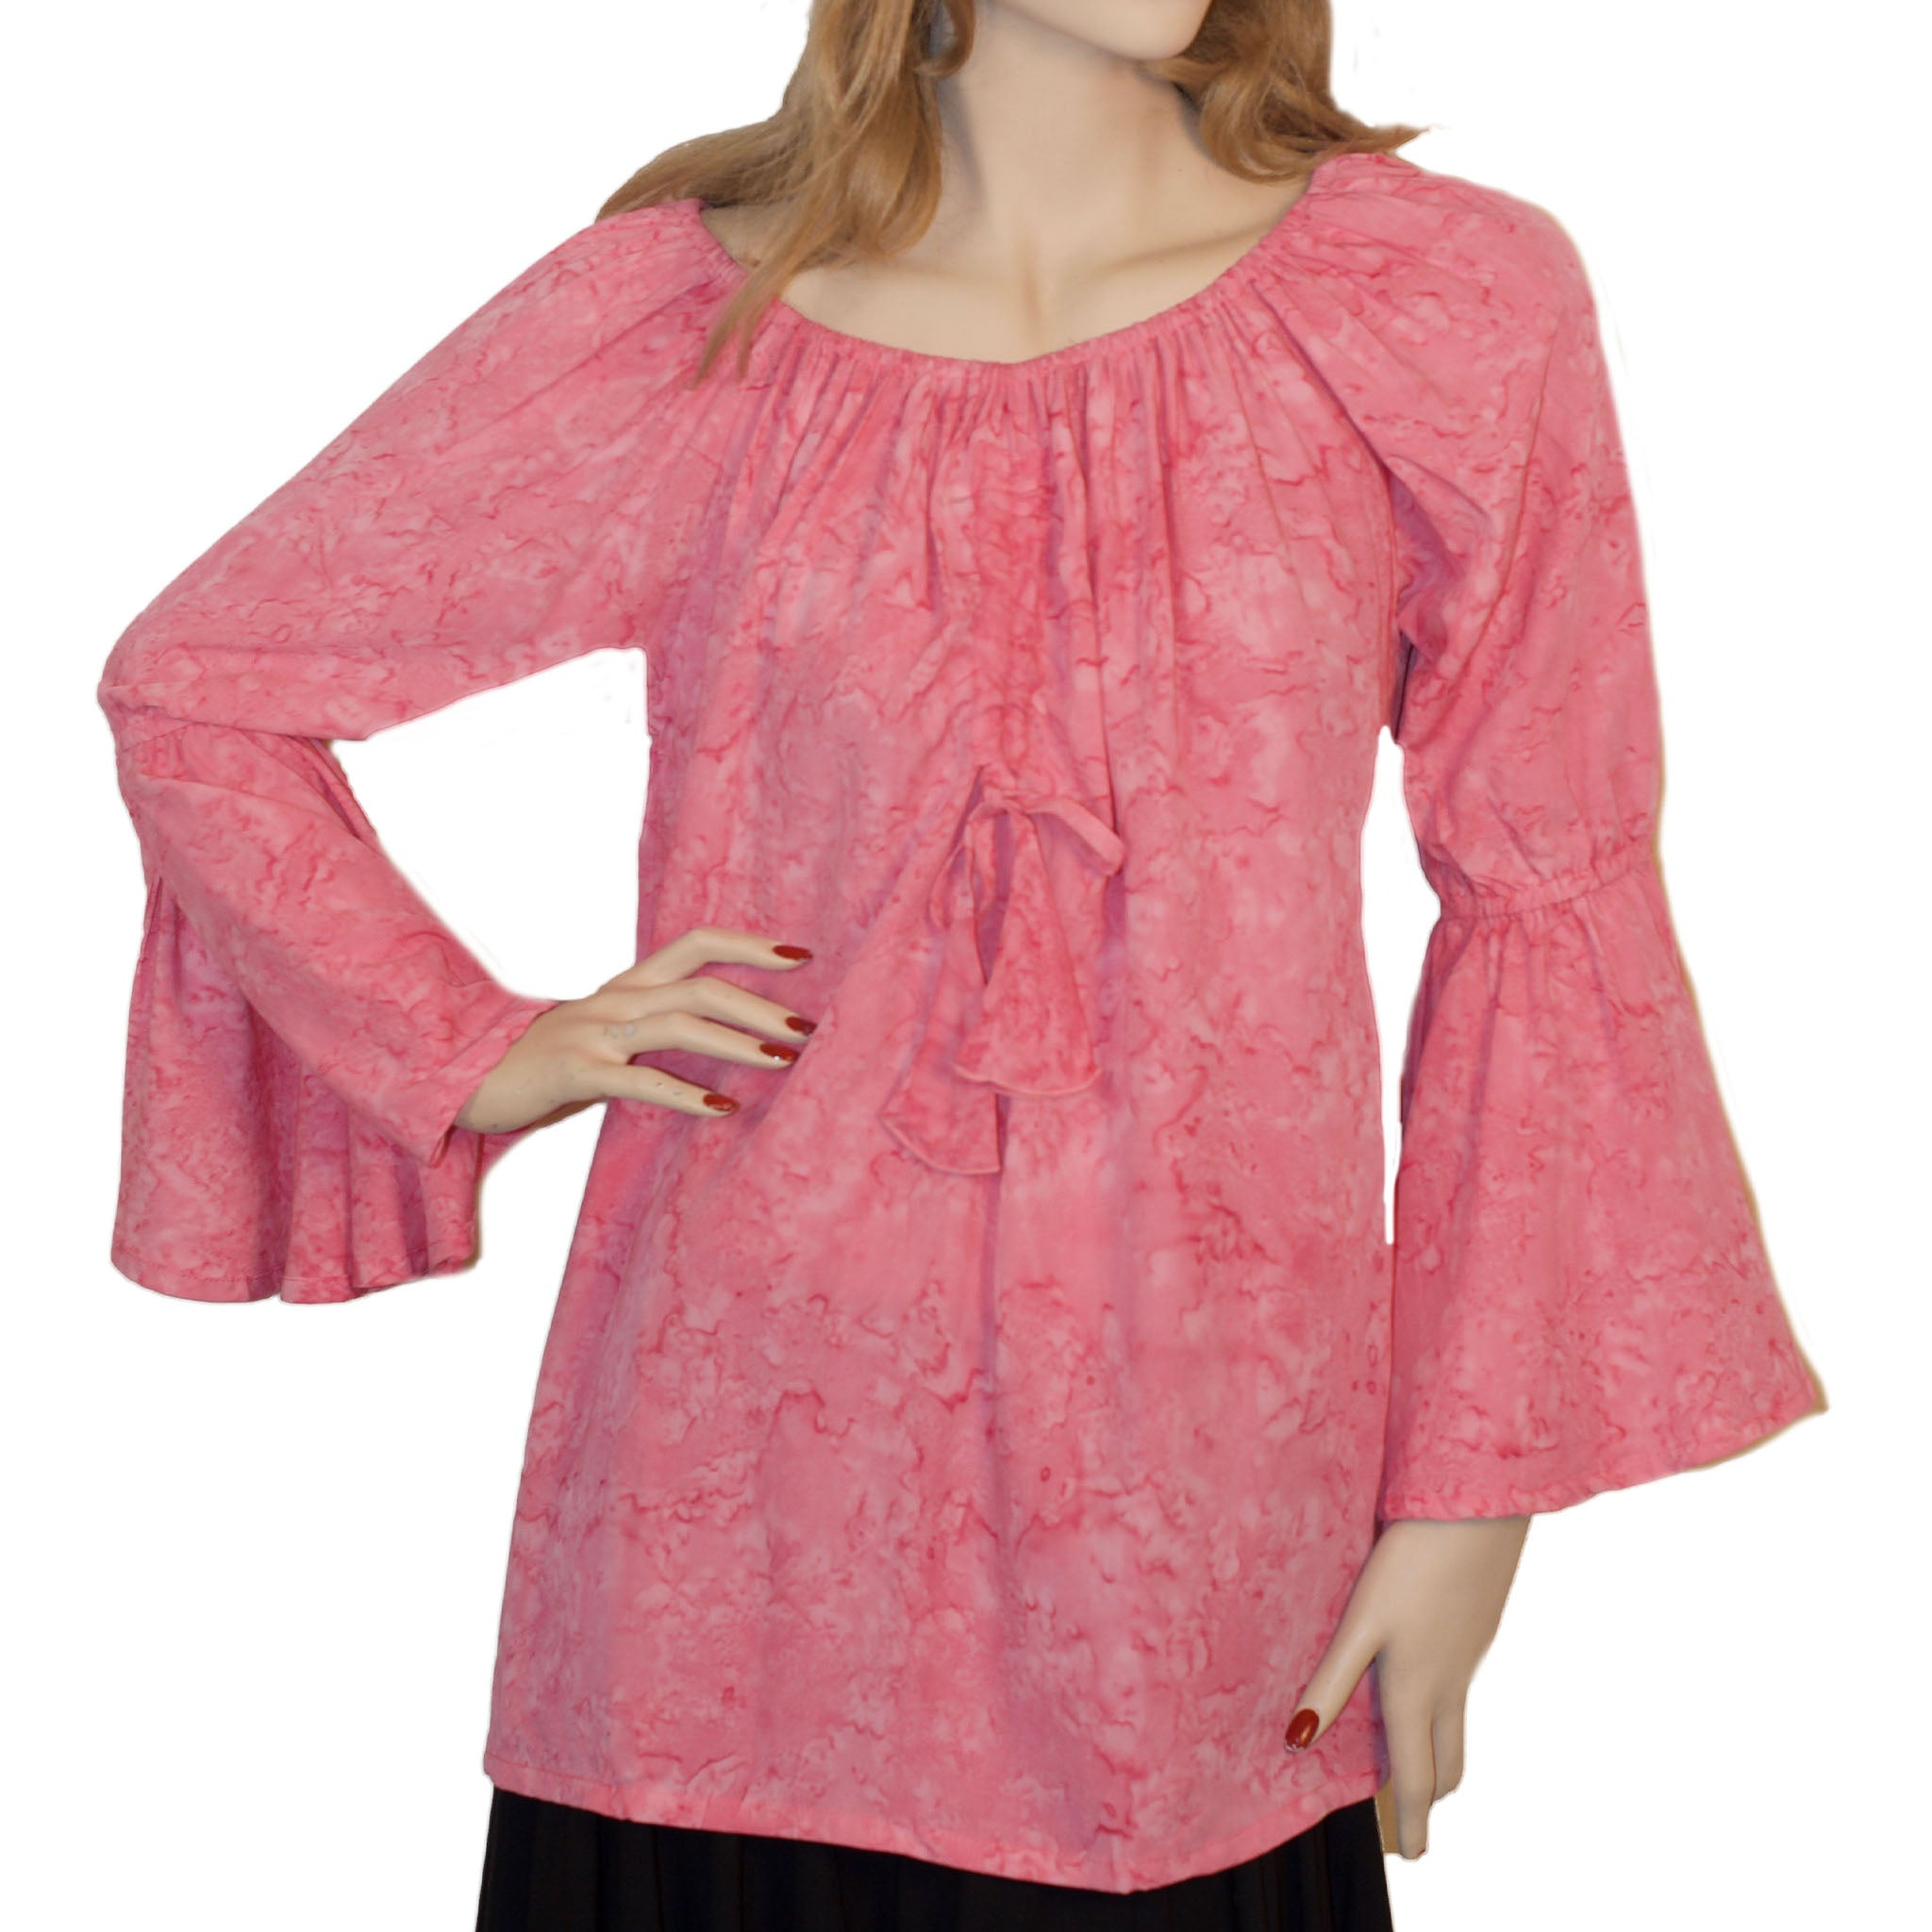 Womans Renaissance Top Pirate Top Pink